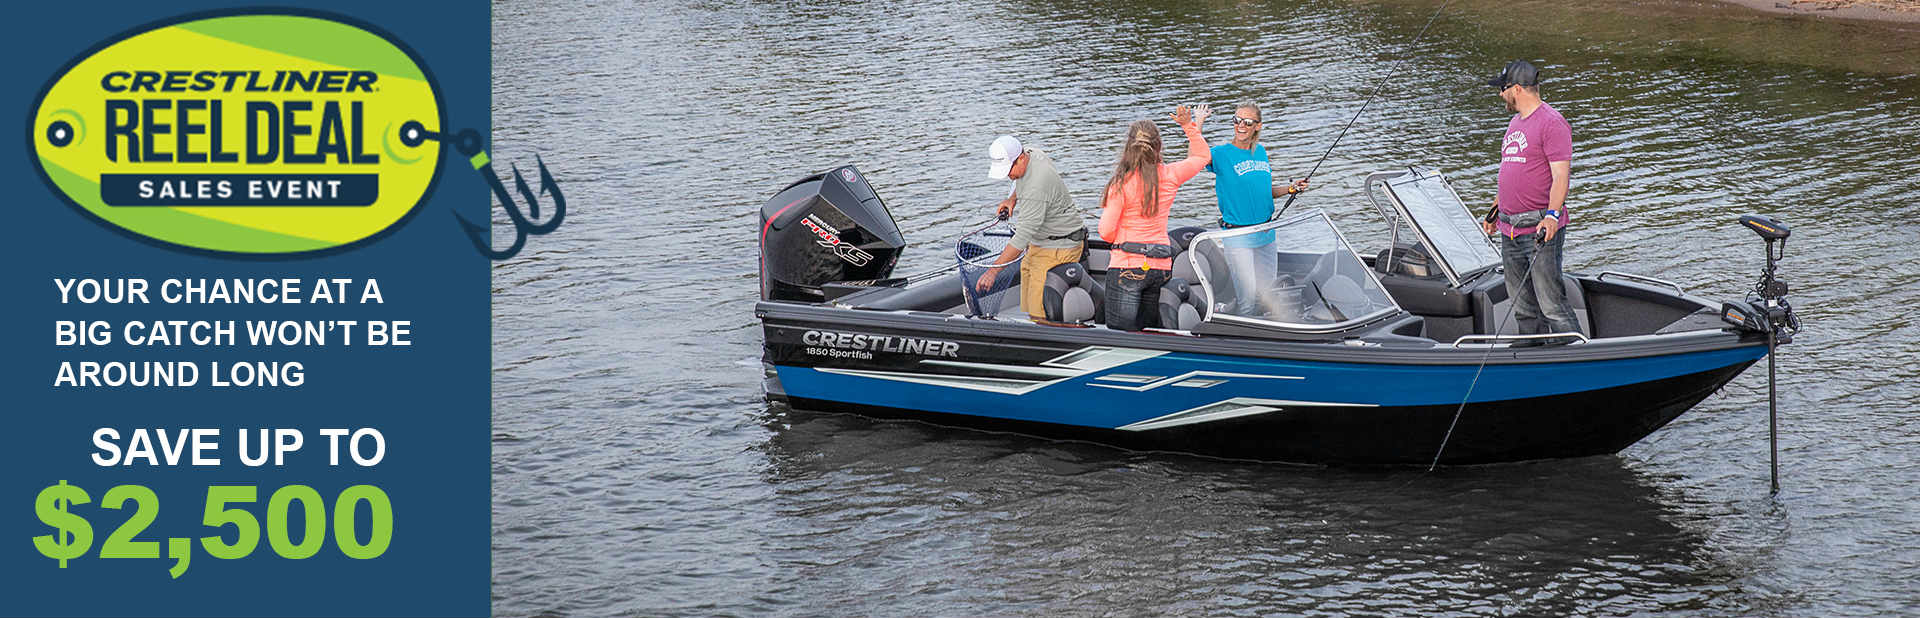 CRESTLINER REAL DEAL SALES EVENT